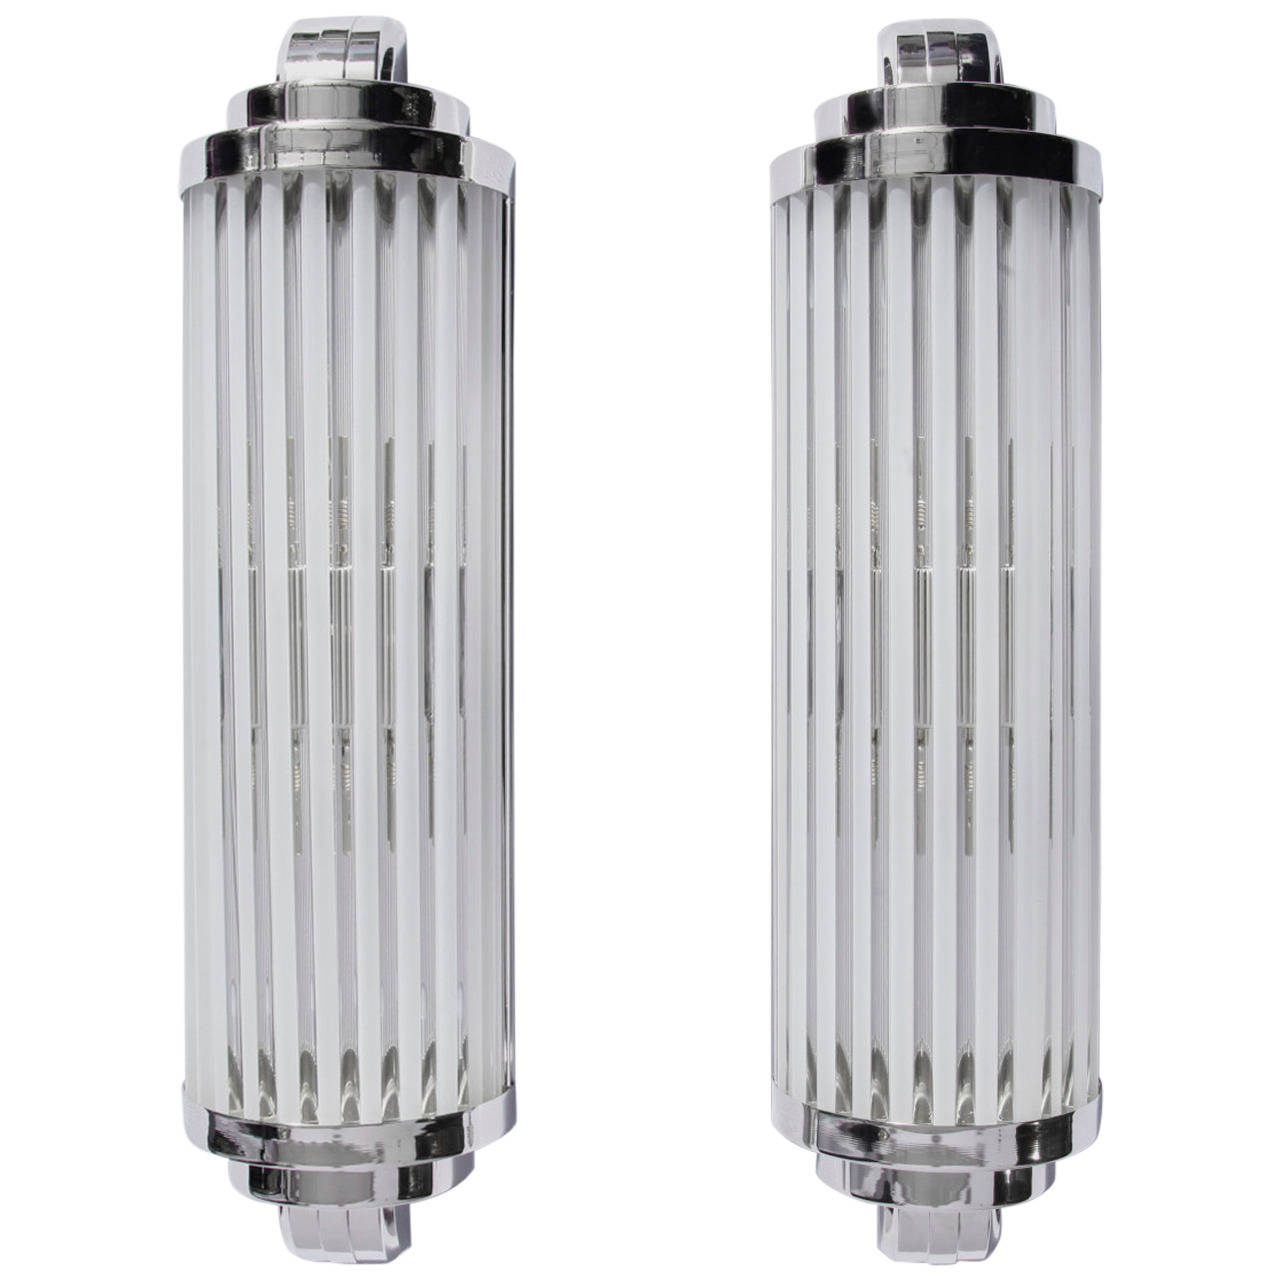 Pair of modernist wall lamps